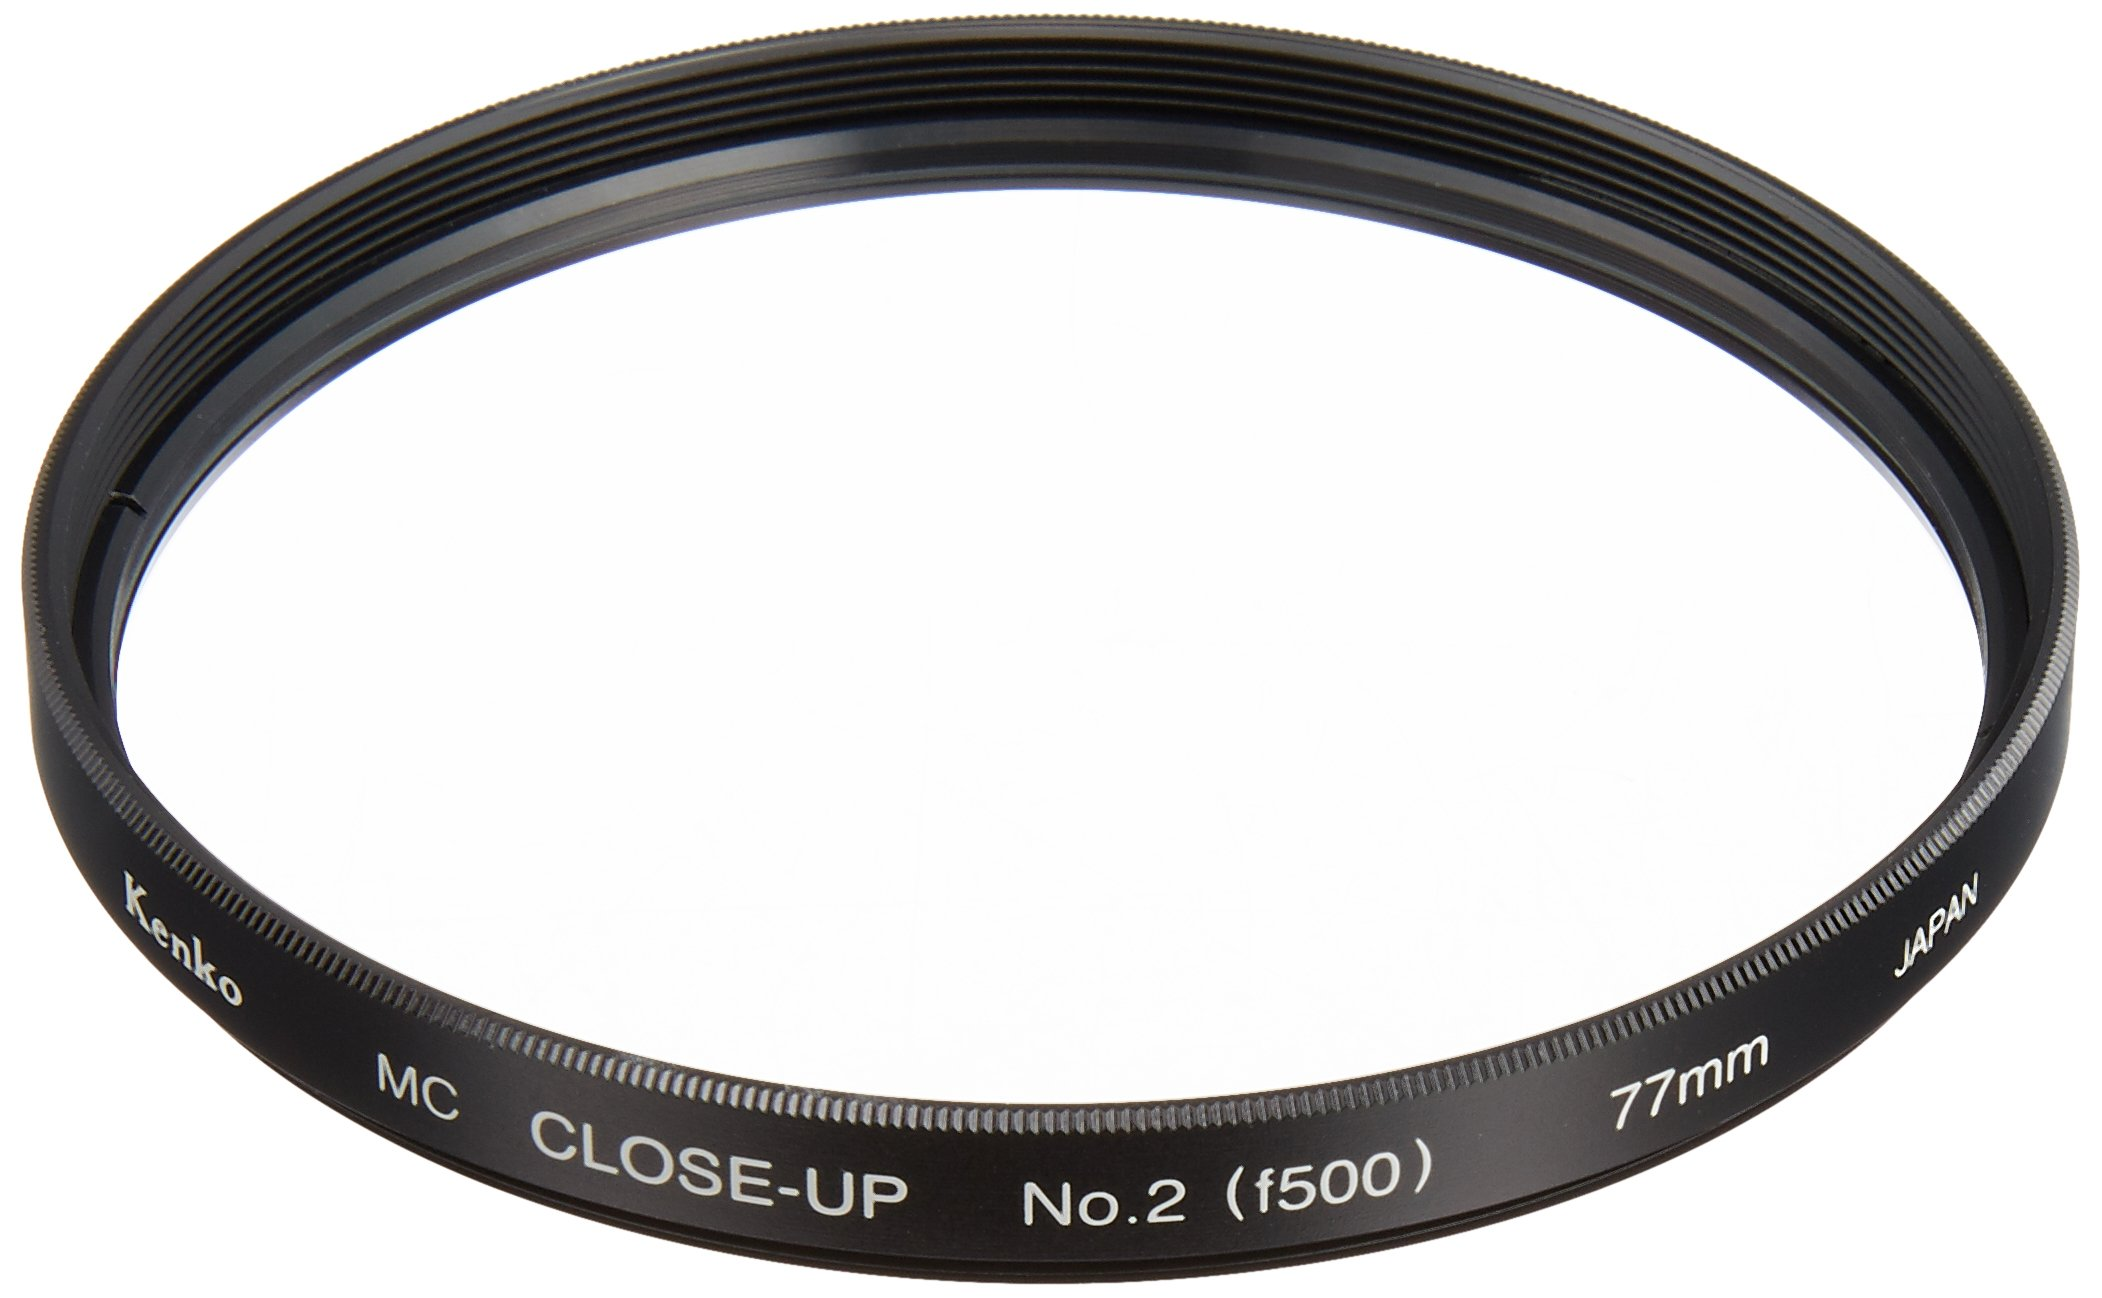 Kenko Close-Up Lens 77mm MC No.2 Multi-Coated